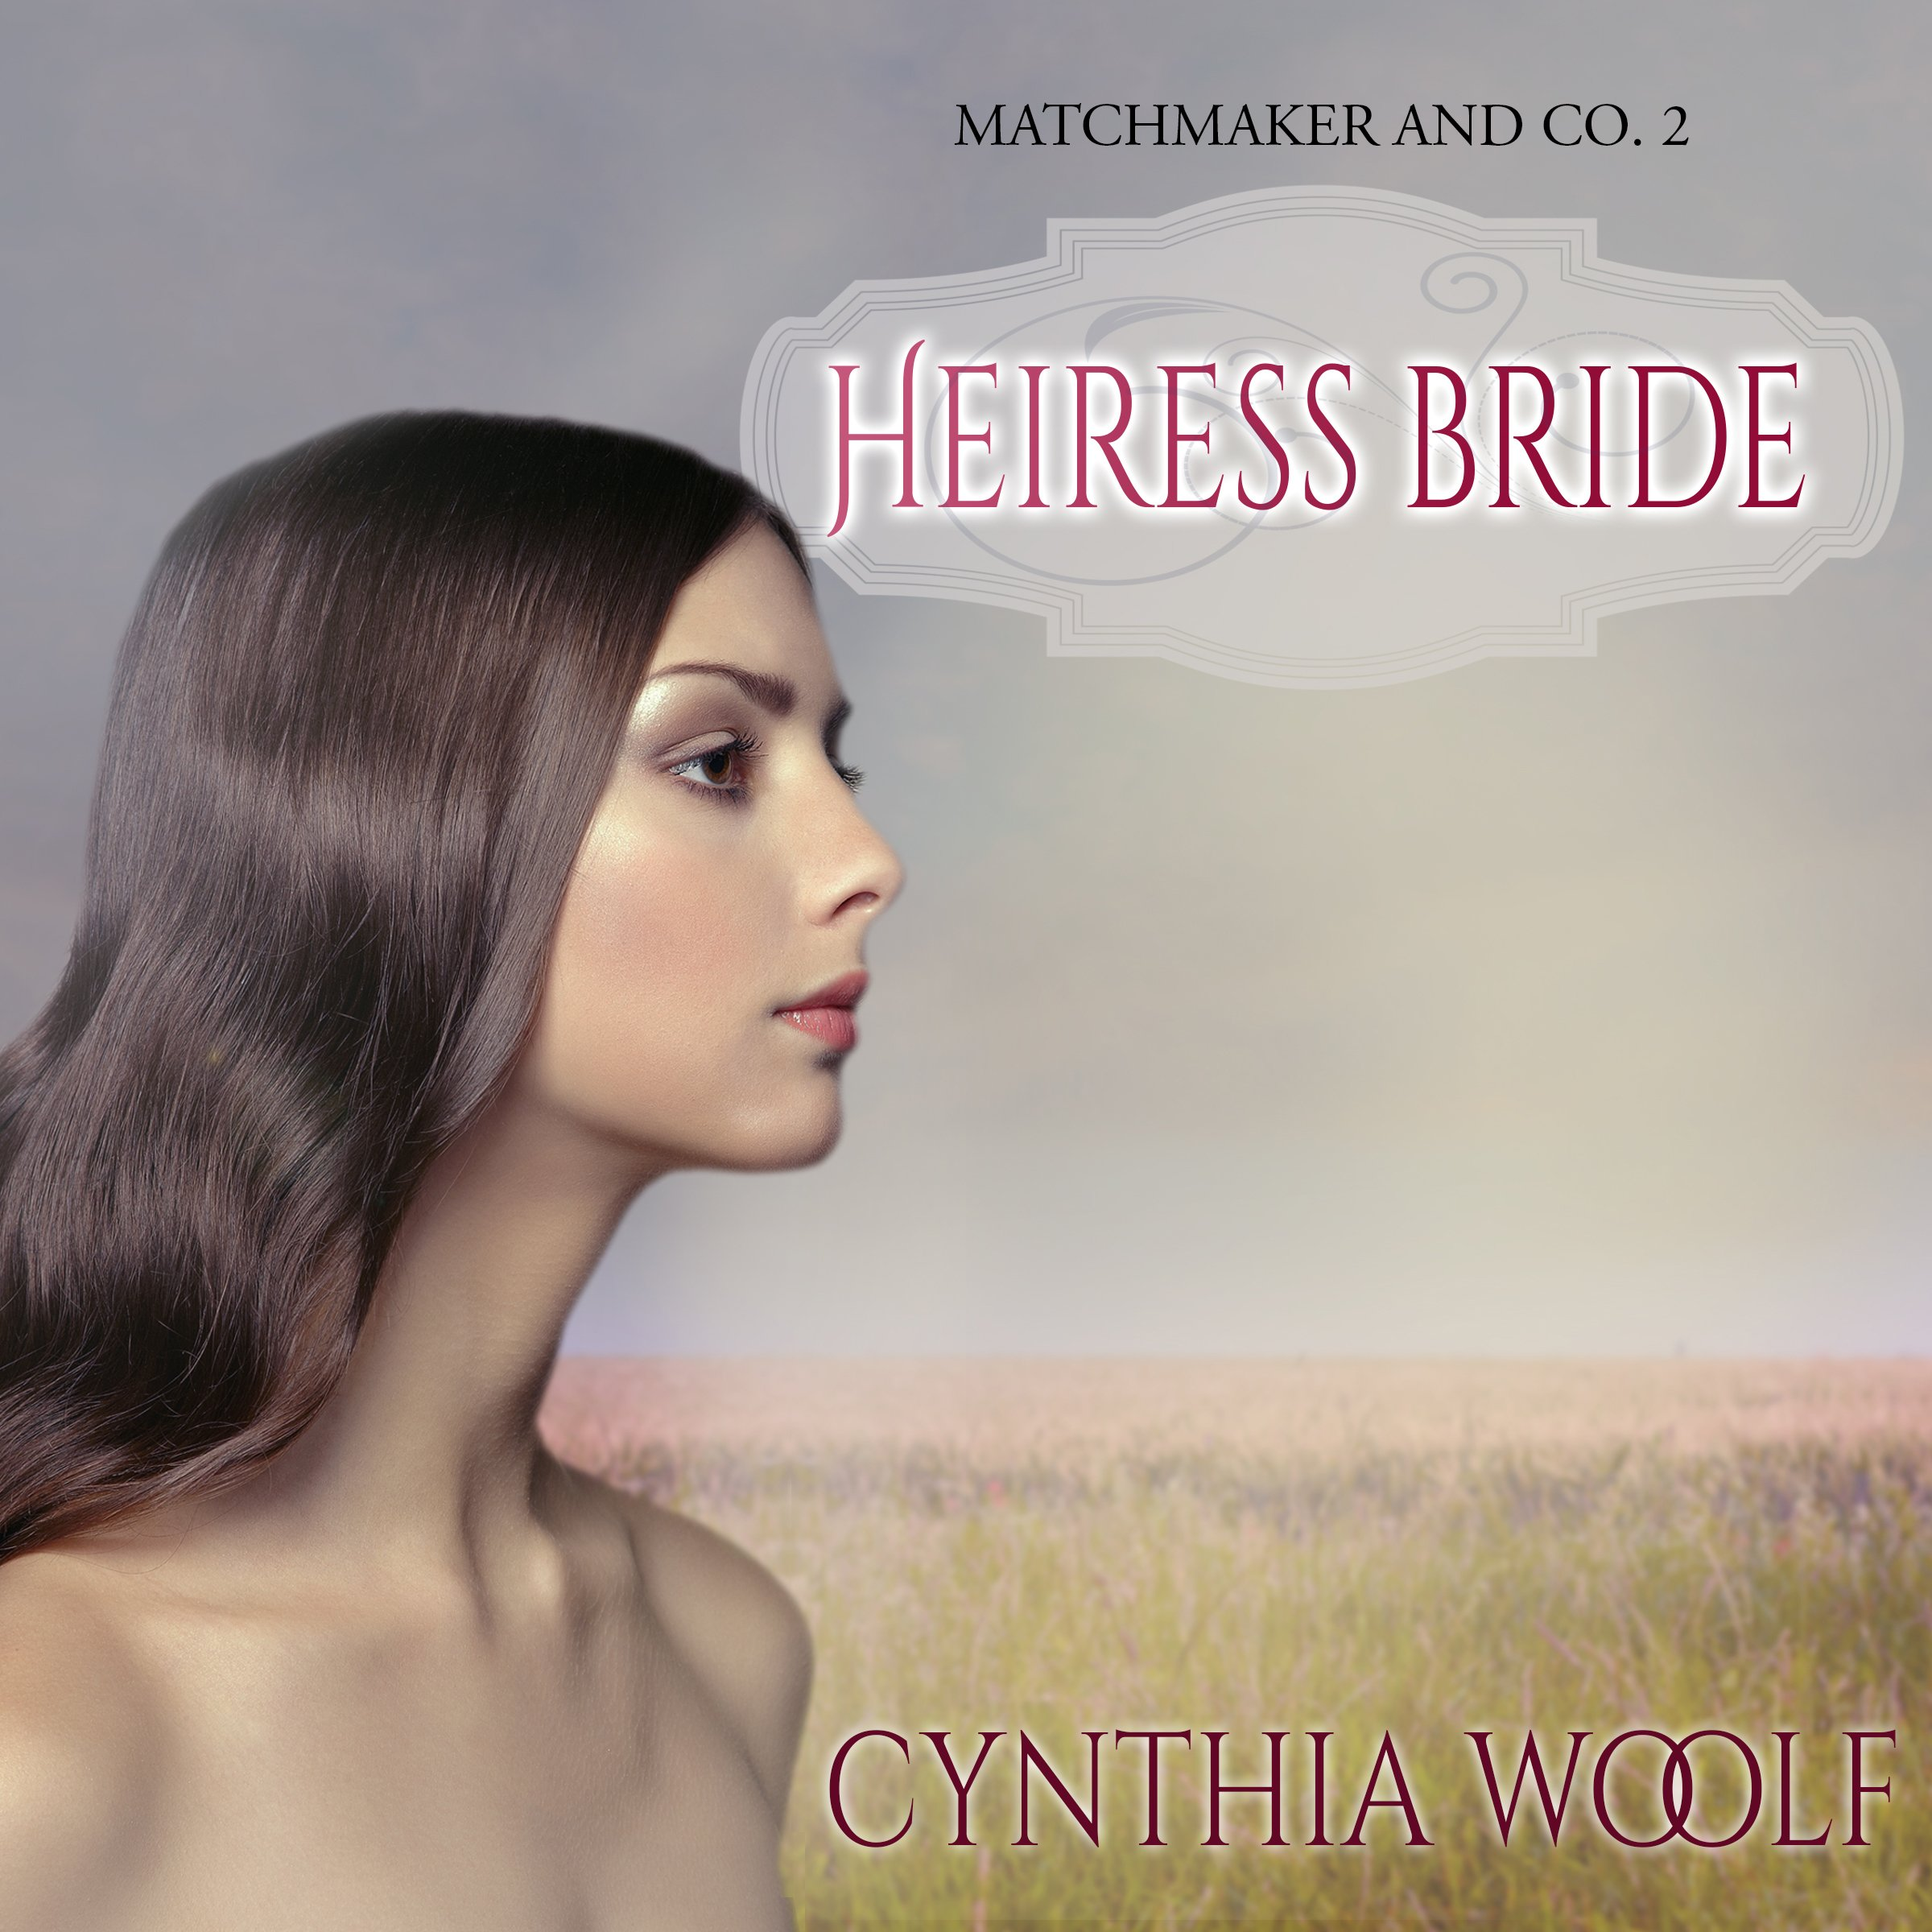 Heiress Bride  Matchmaker And Co. Book 2